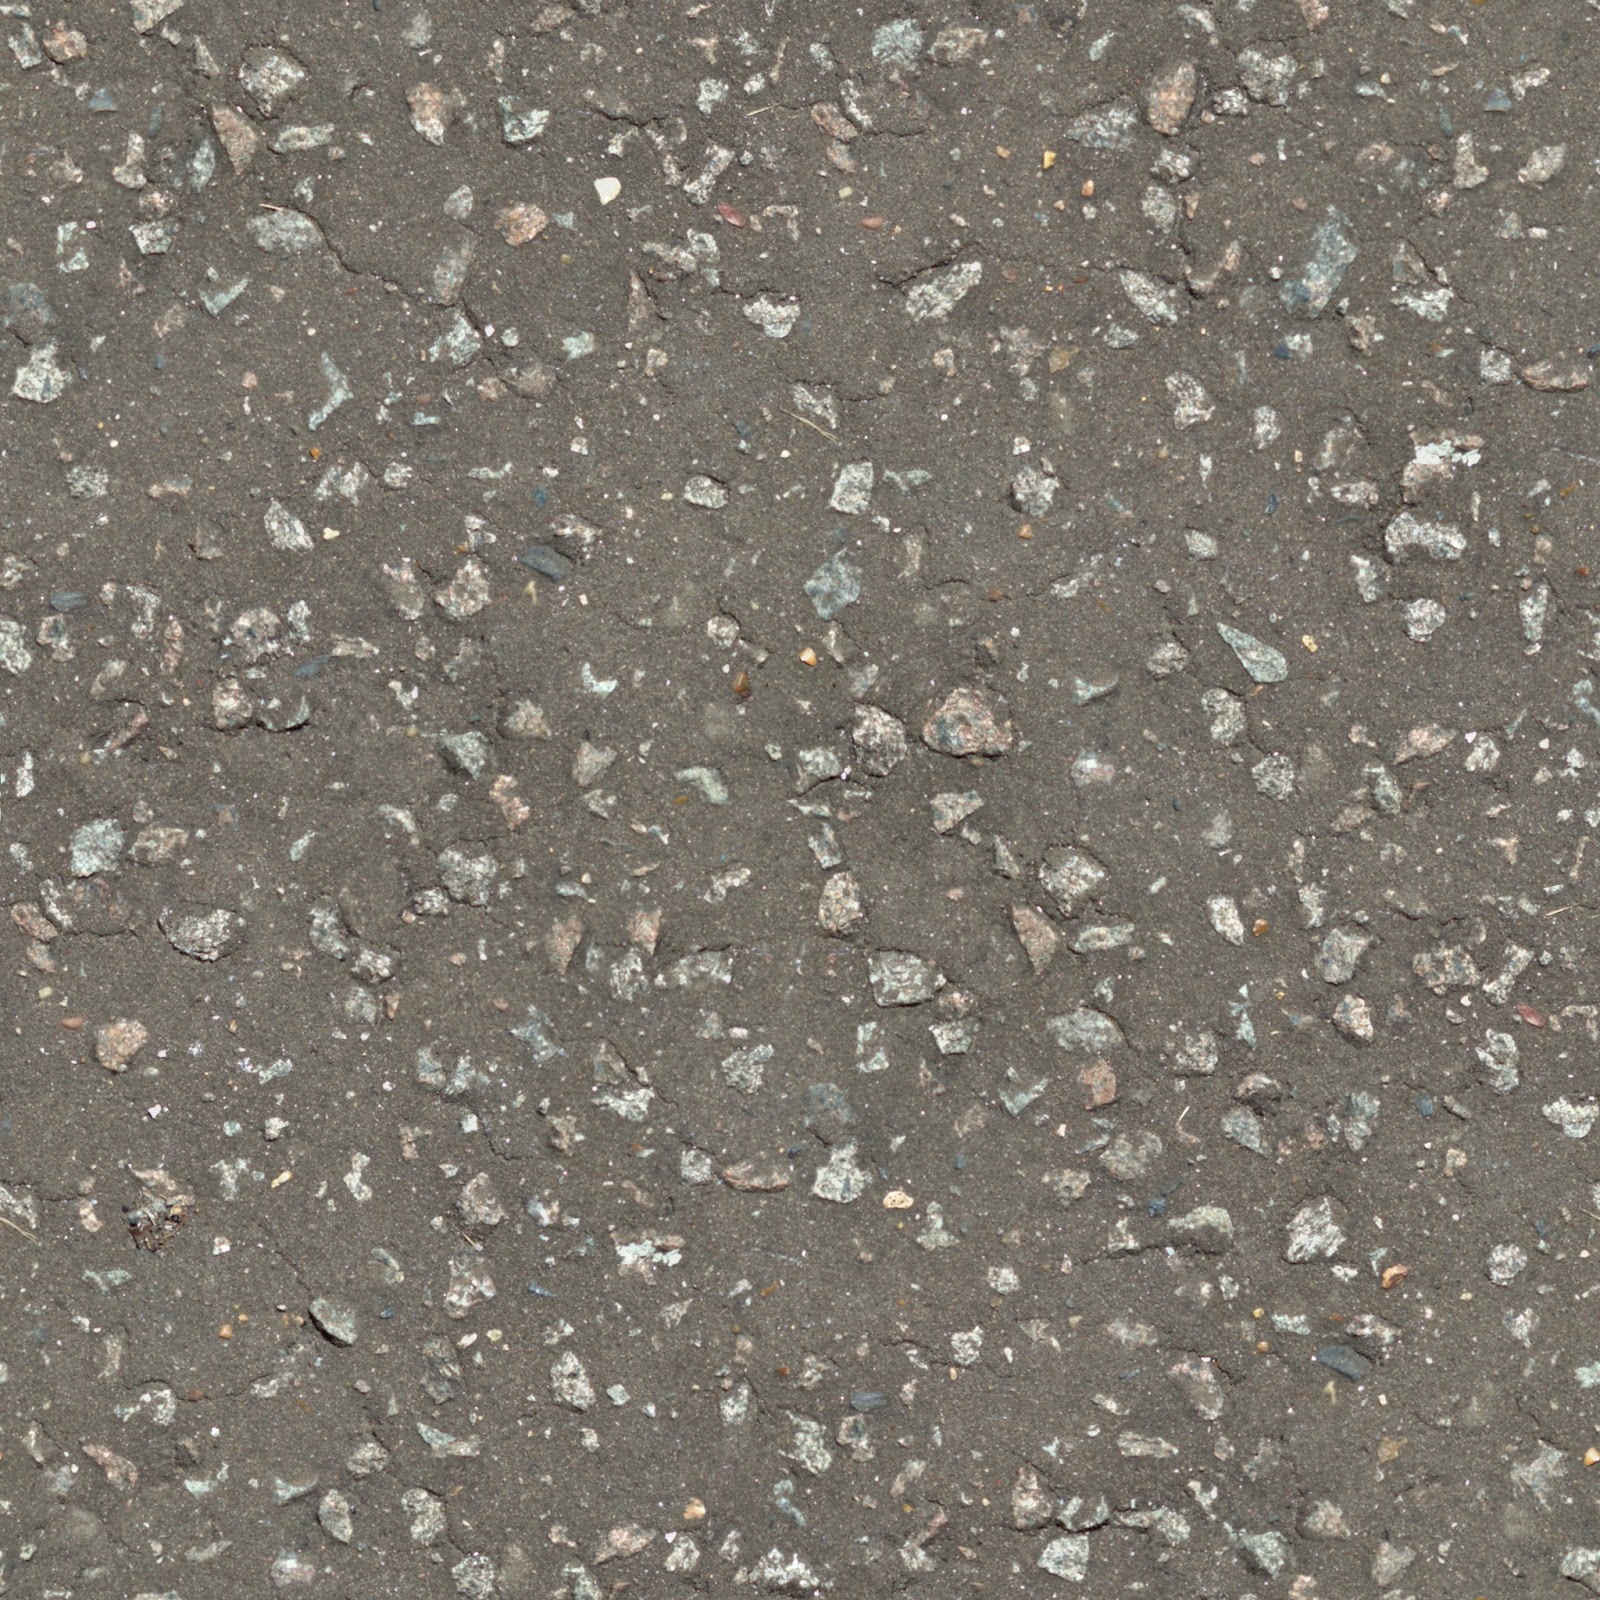 High Resolution Seamless Textures: Concrete dirt ground ...